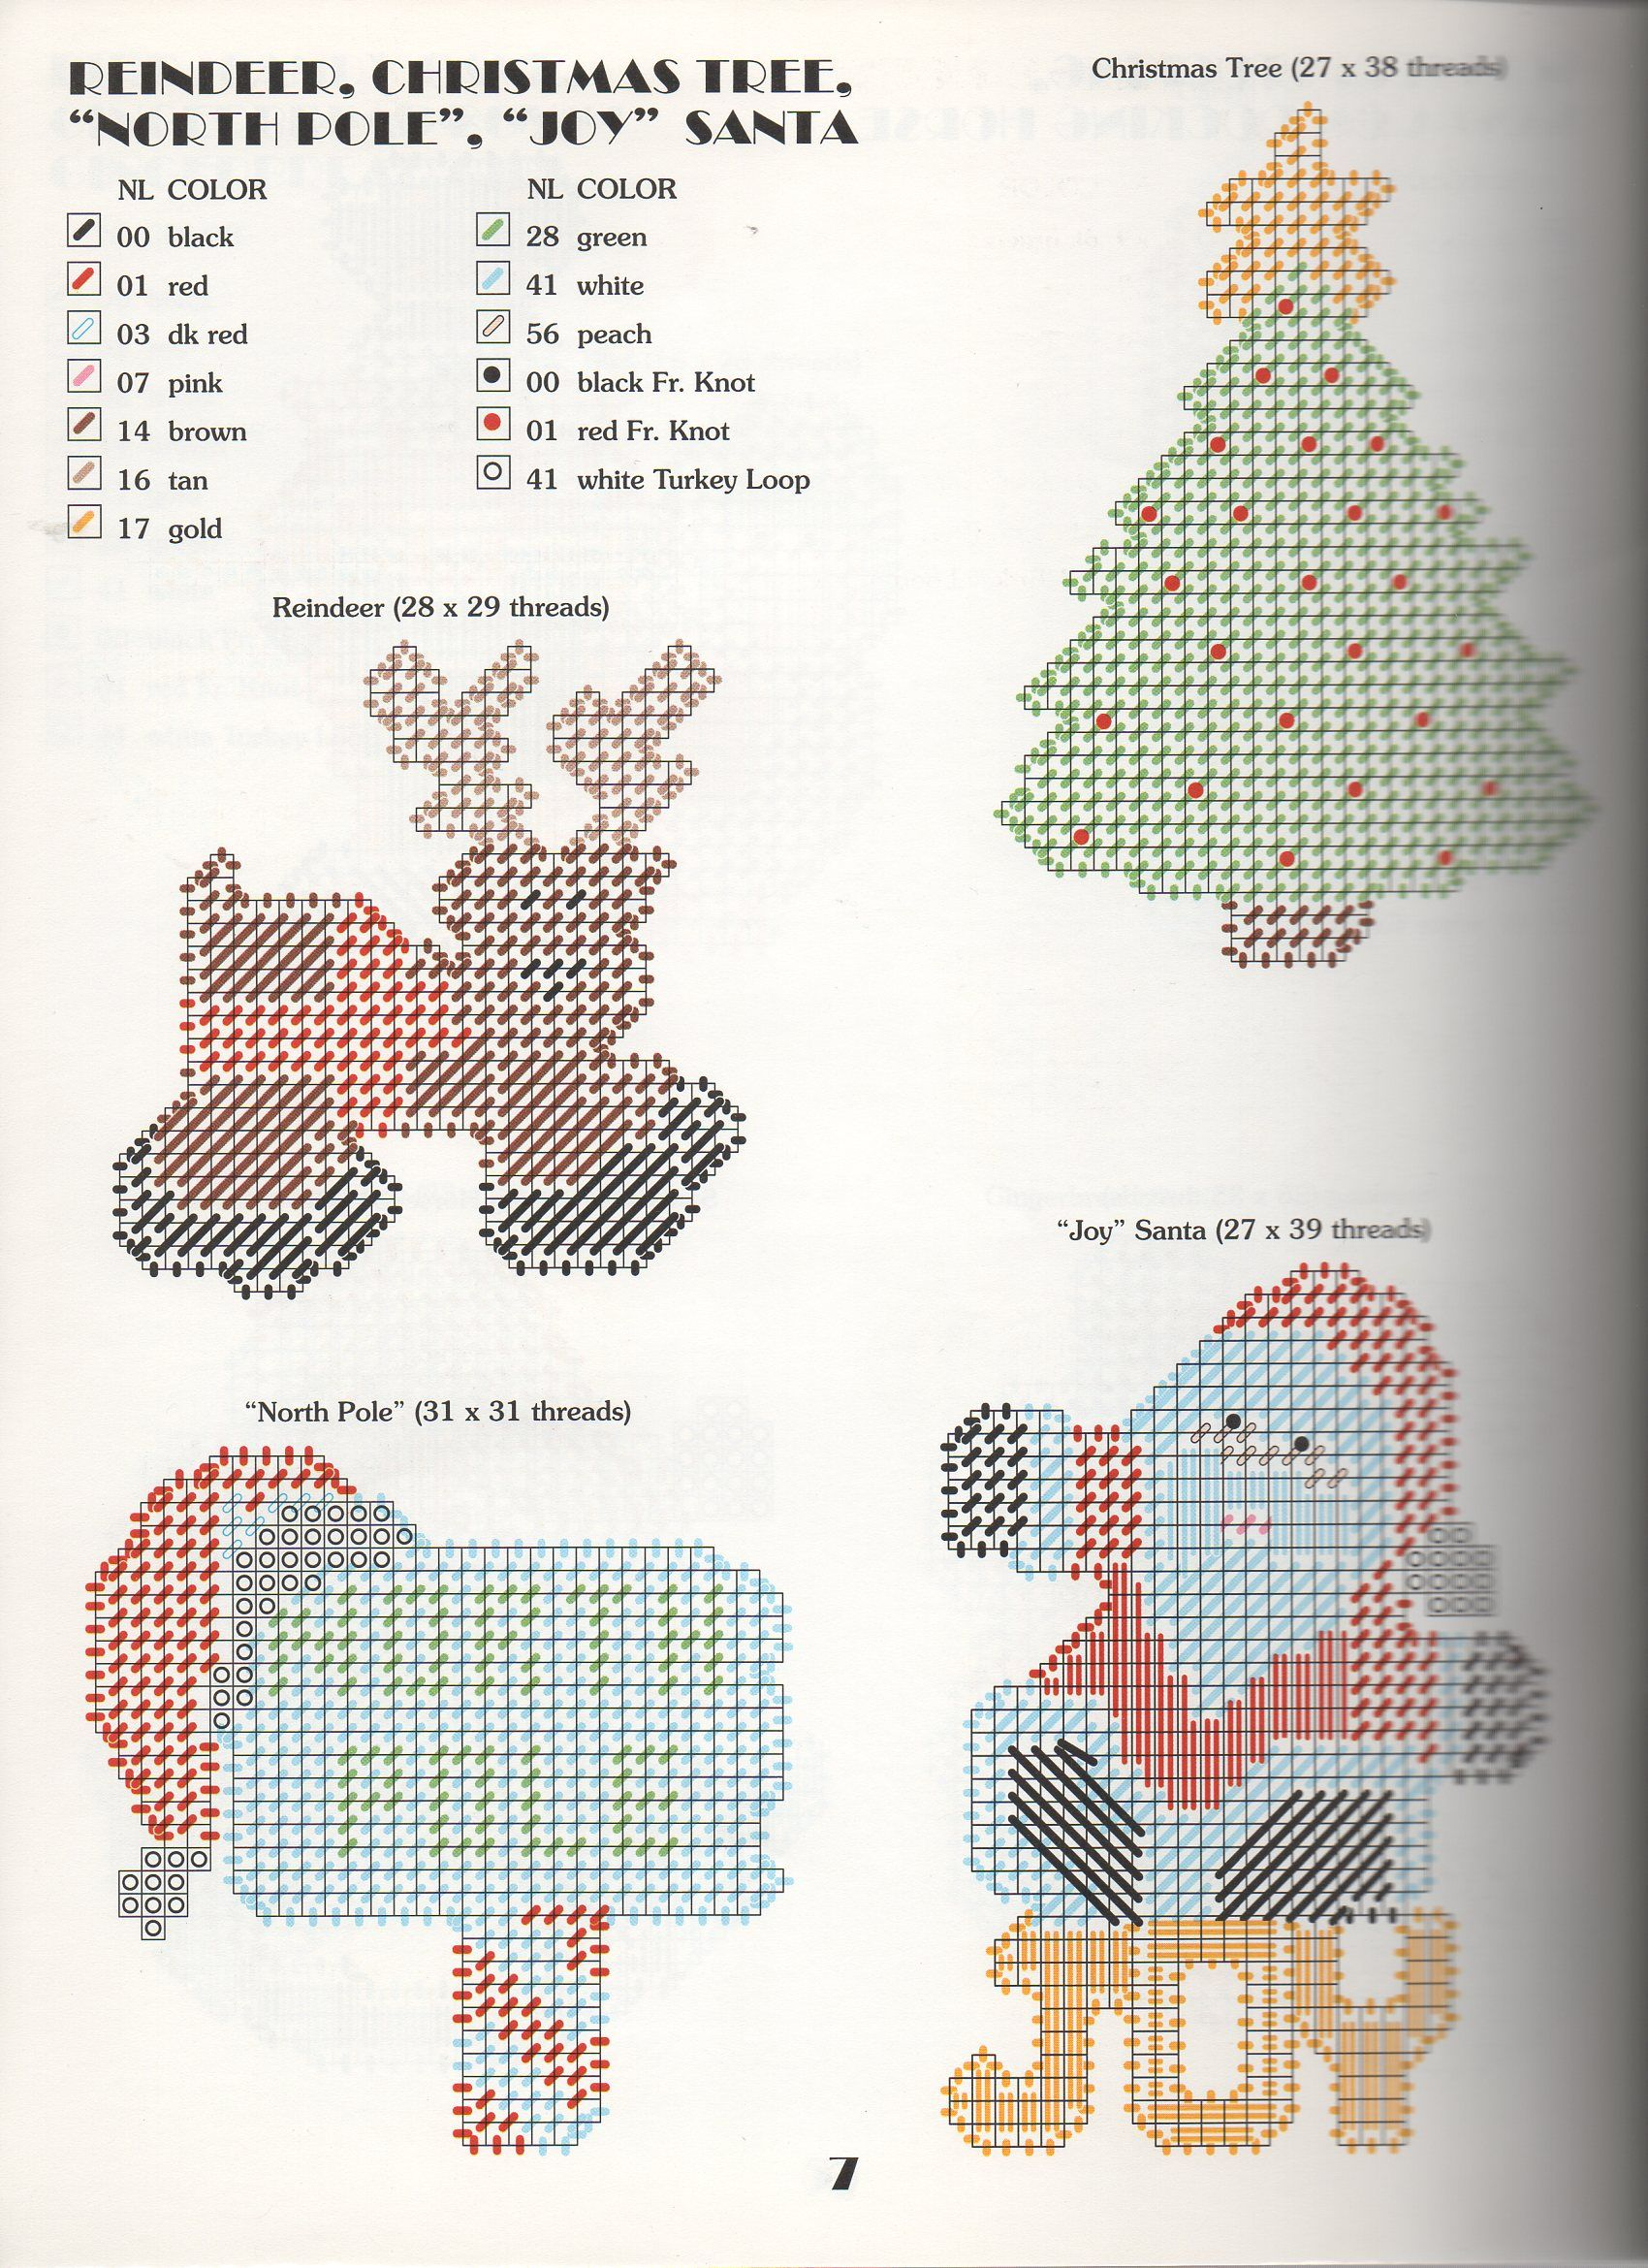 Christmas Ornaments 1 Plastic Canvas Patterns Plastic Canvas Patterns Free Plastic Canvas Christmas